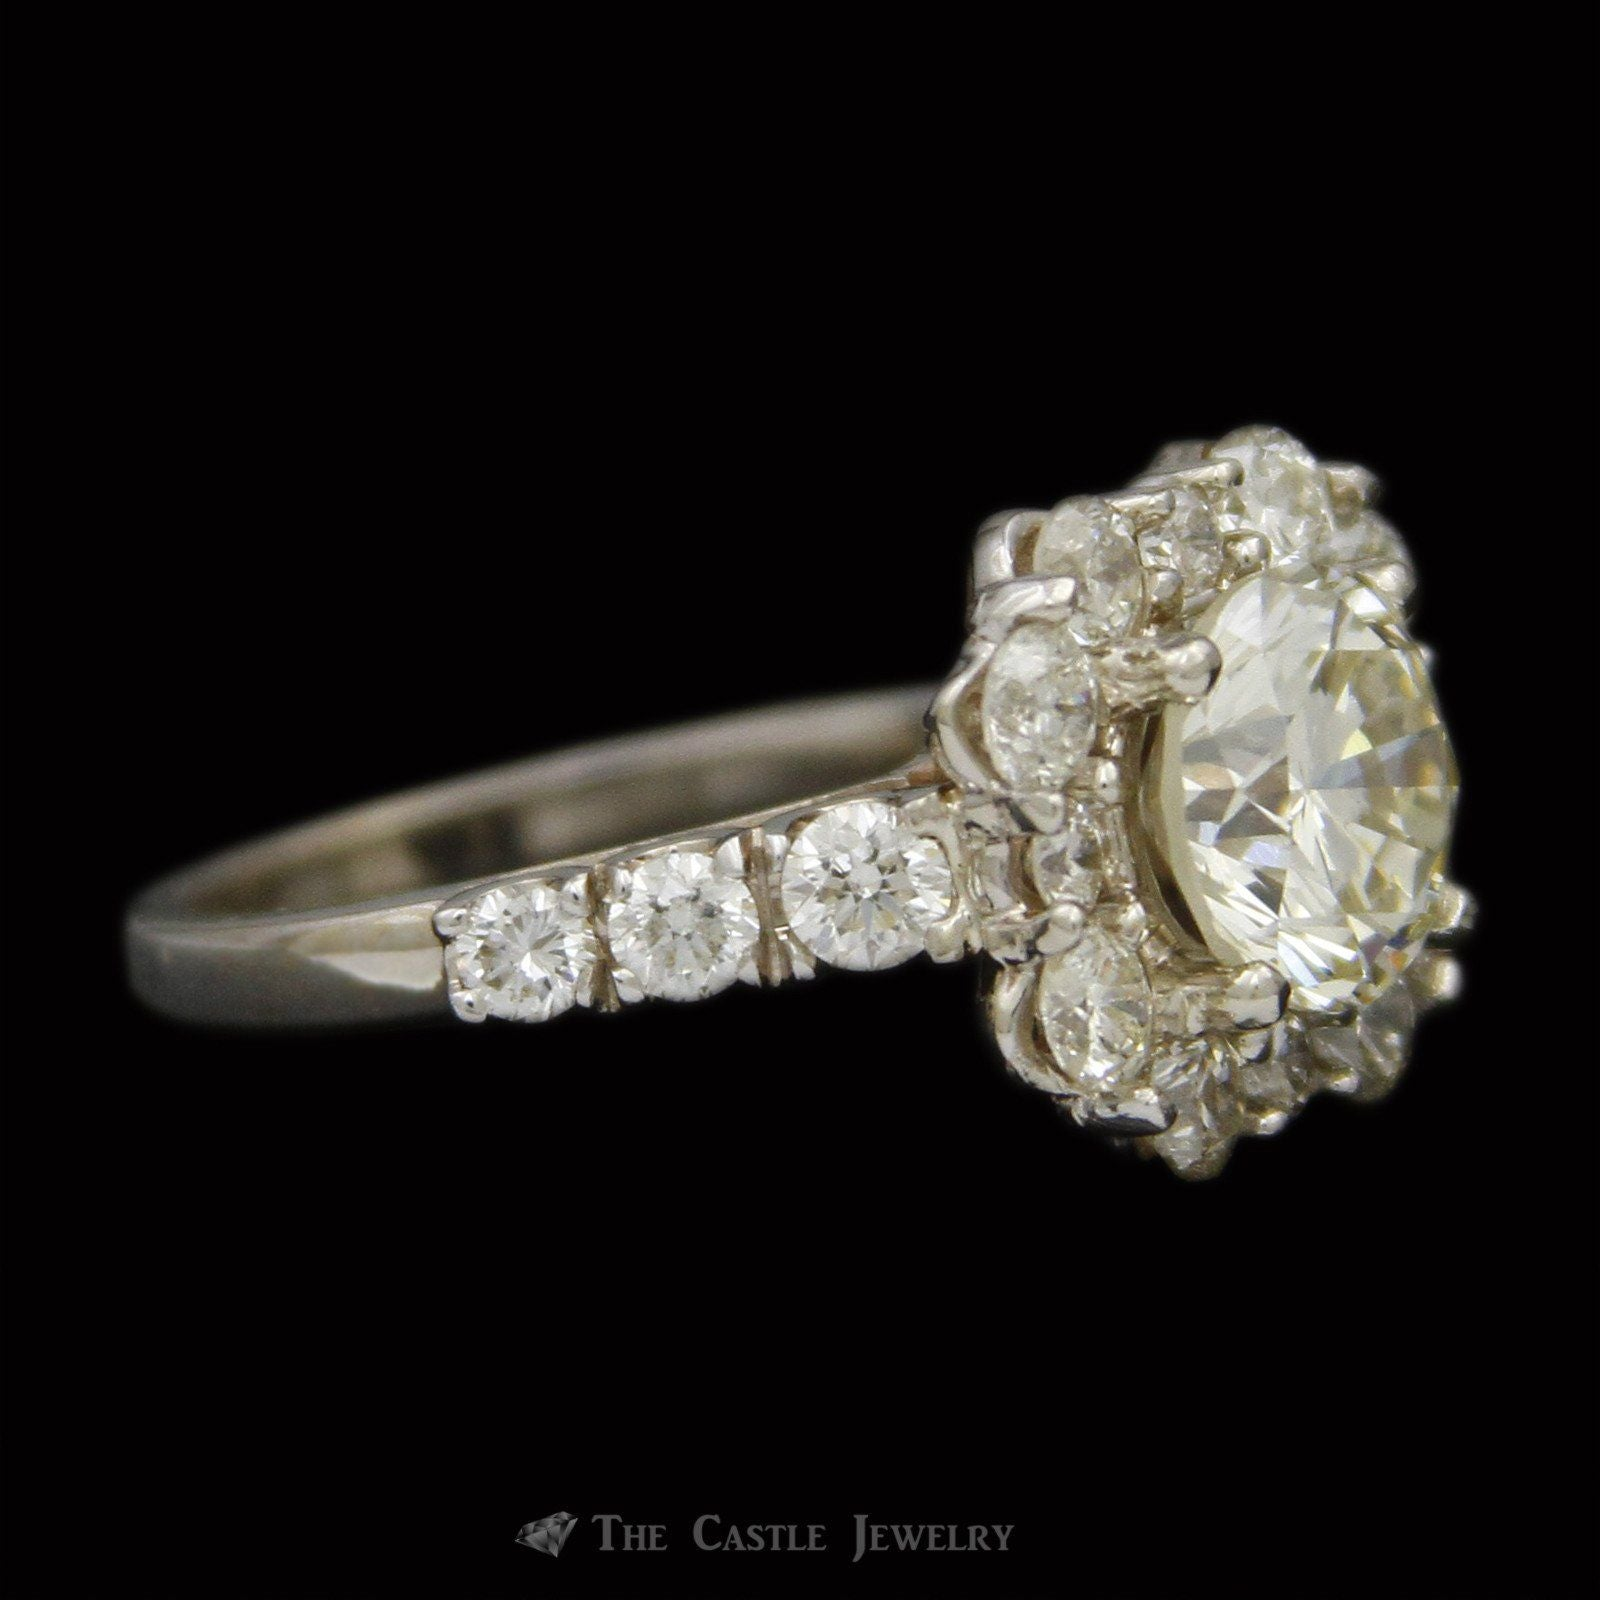 2.54ct Round Brilliant Cut Diamond Engagement Ring w/ Stunning Round Diamond Bezel & Sides in 14k-2